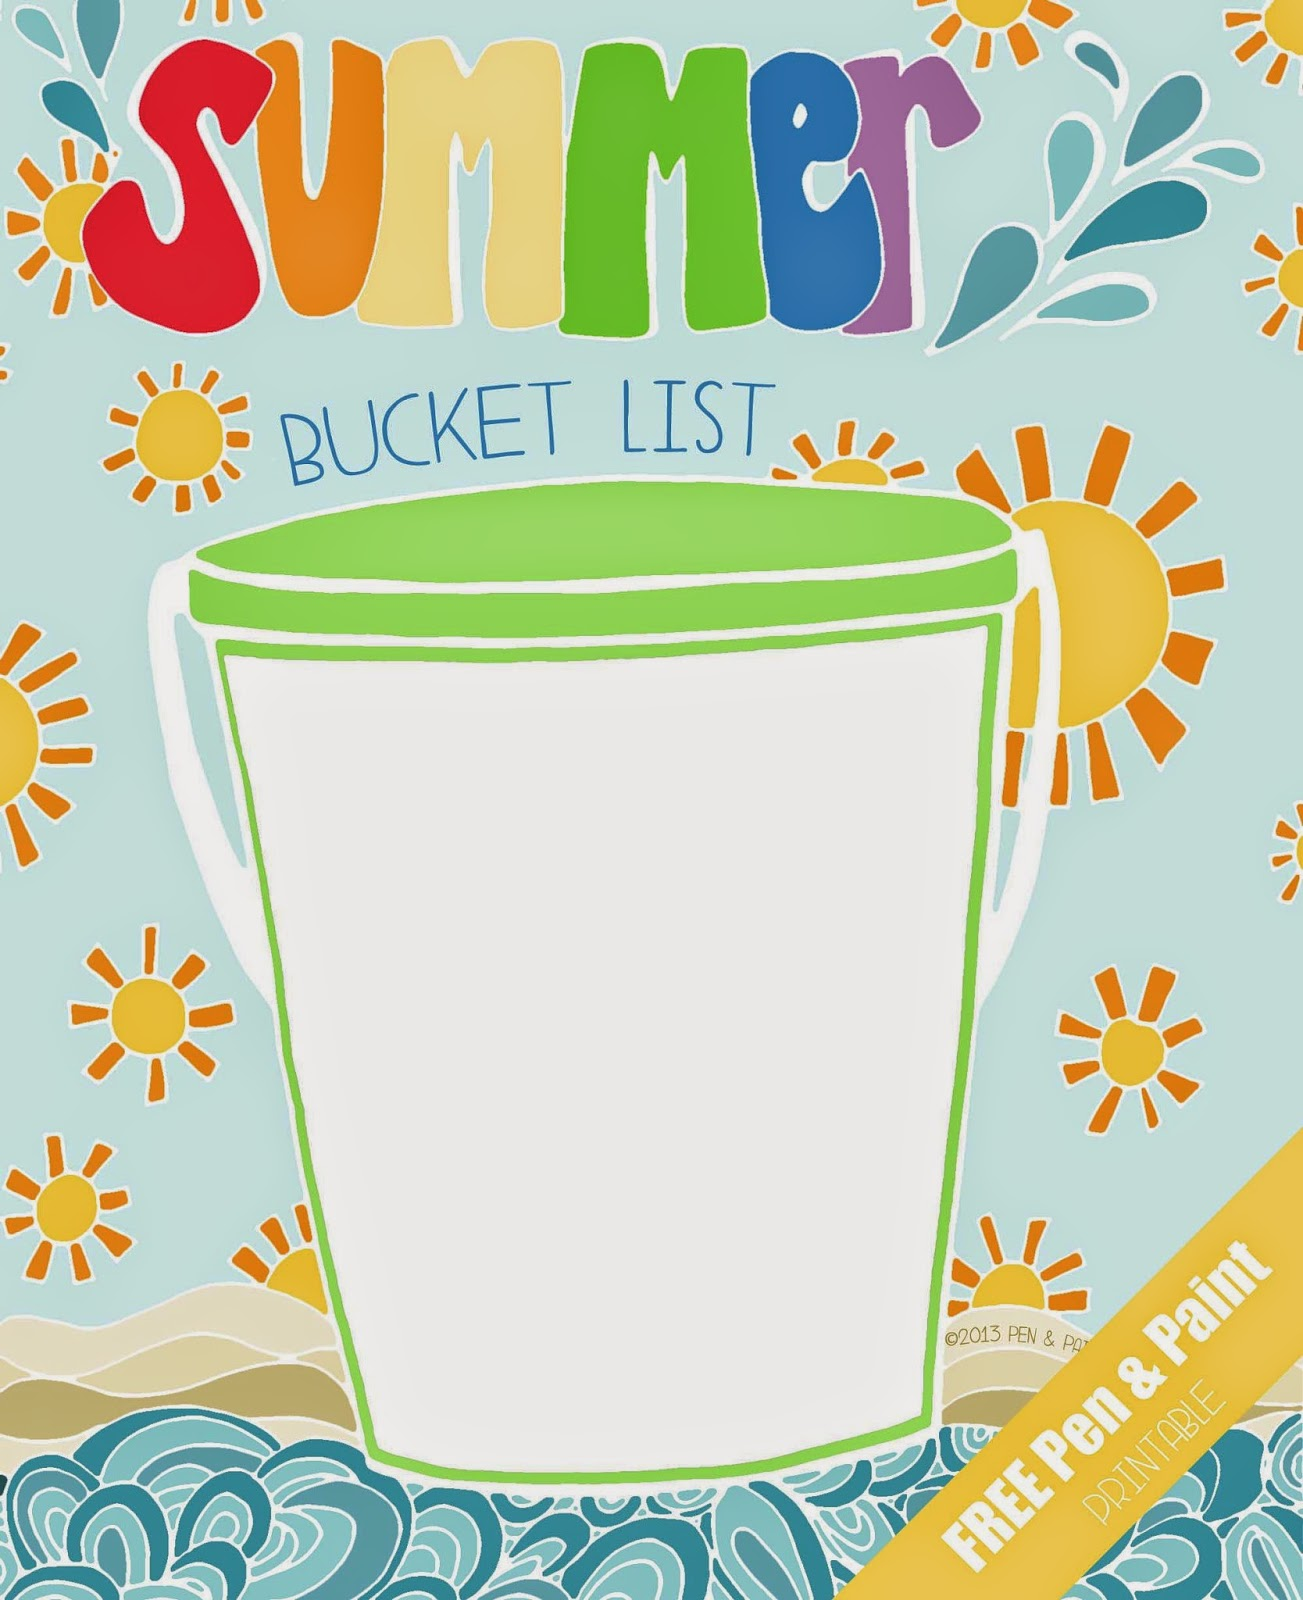 photo relating to Summer Bucket List Printable referred to as pen paint: Absolutely free Printable Coloring Web page - Summertime Bucket Checklist